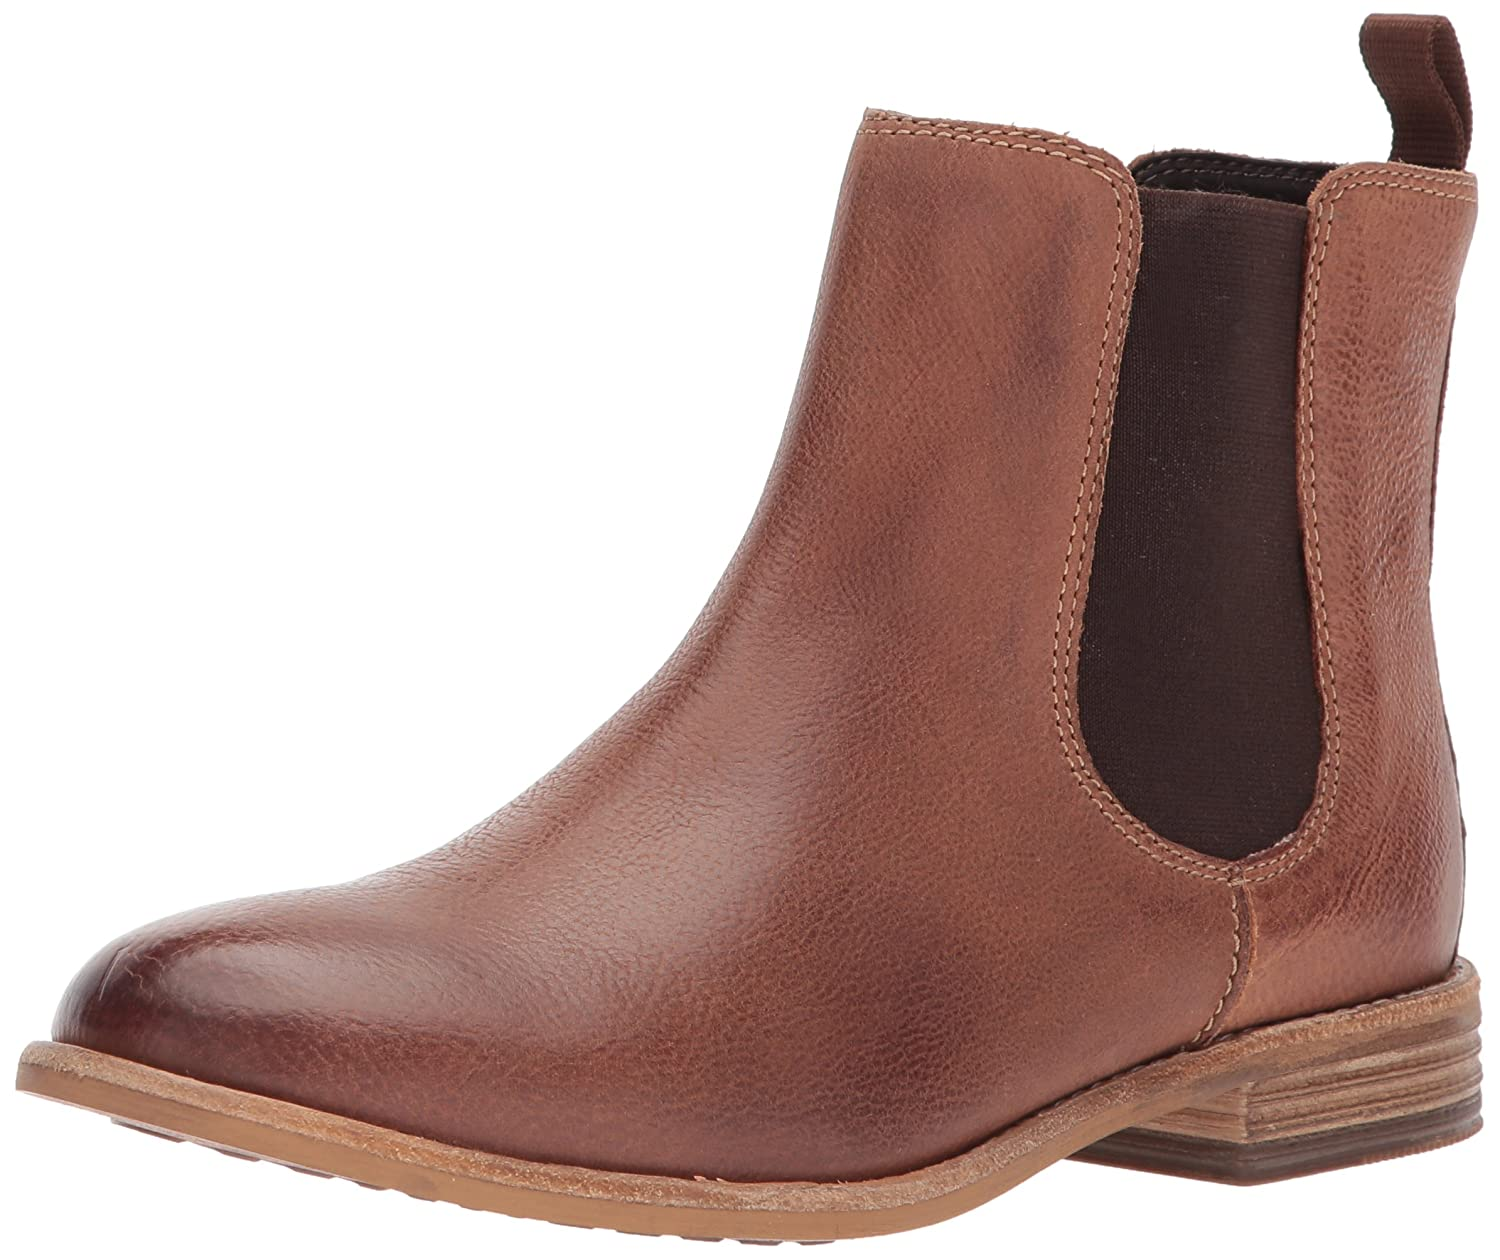 CLARKS Women's Maypearl Nala Ankle Bootie B01N1UNTH7 5 B(M) US|Dark Tan Leather